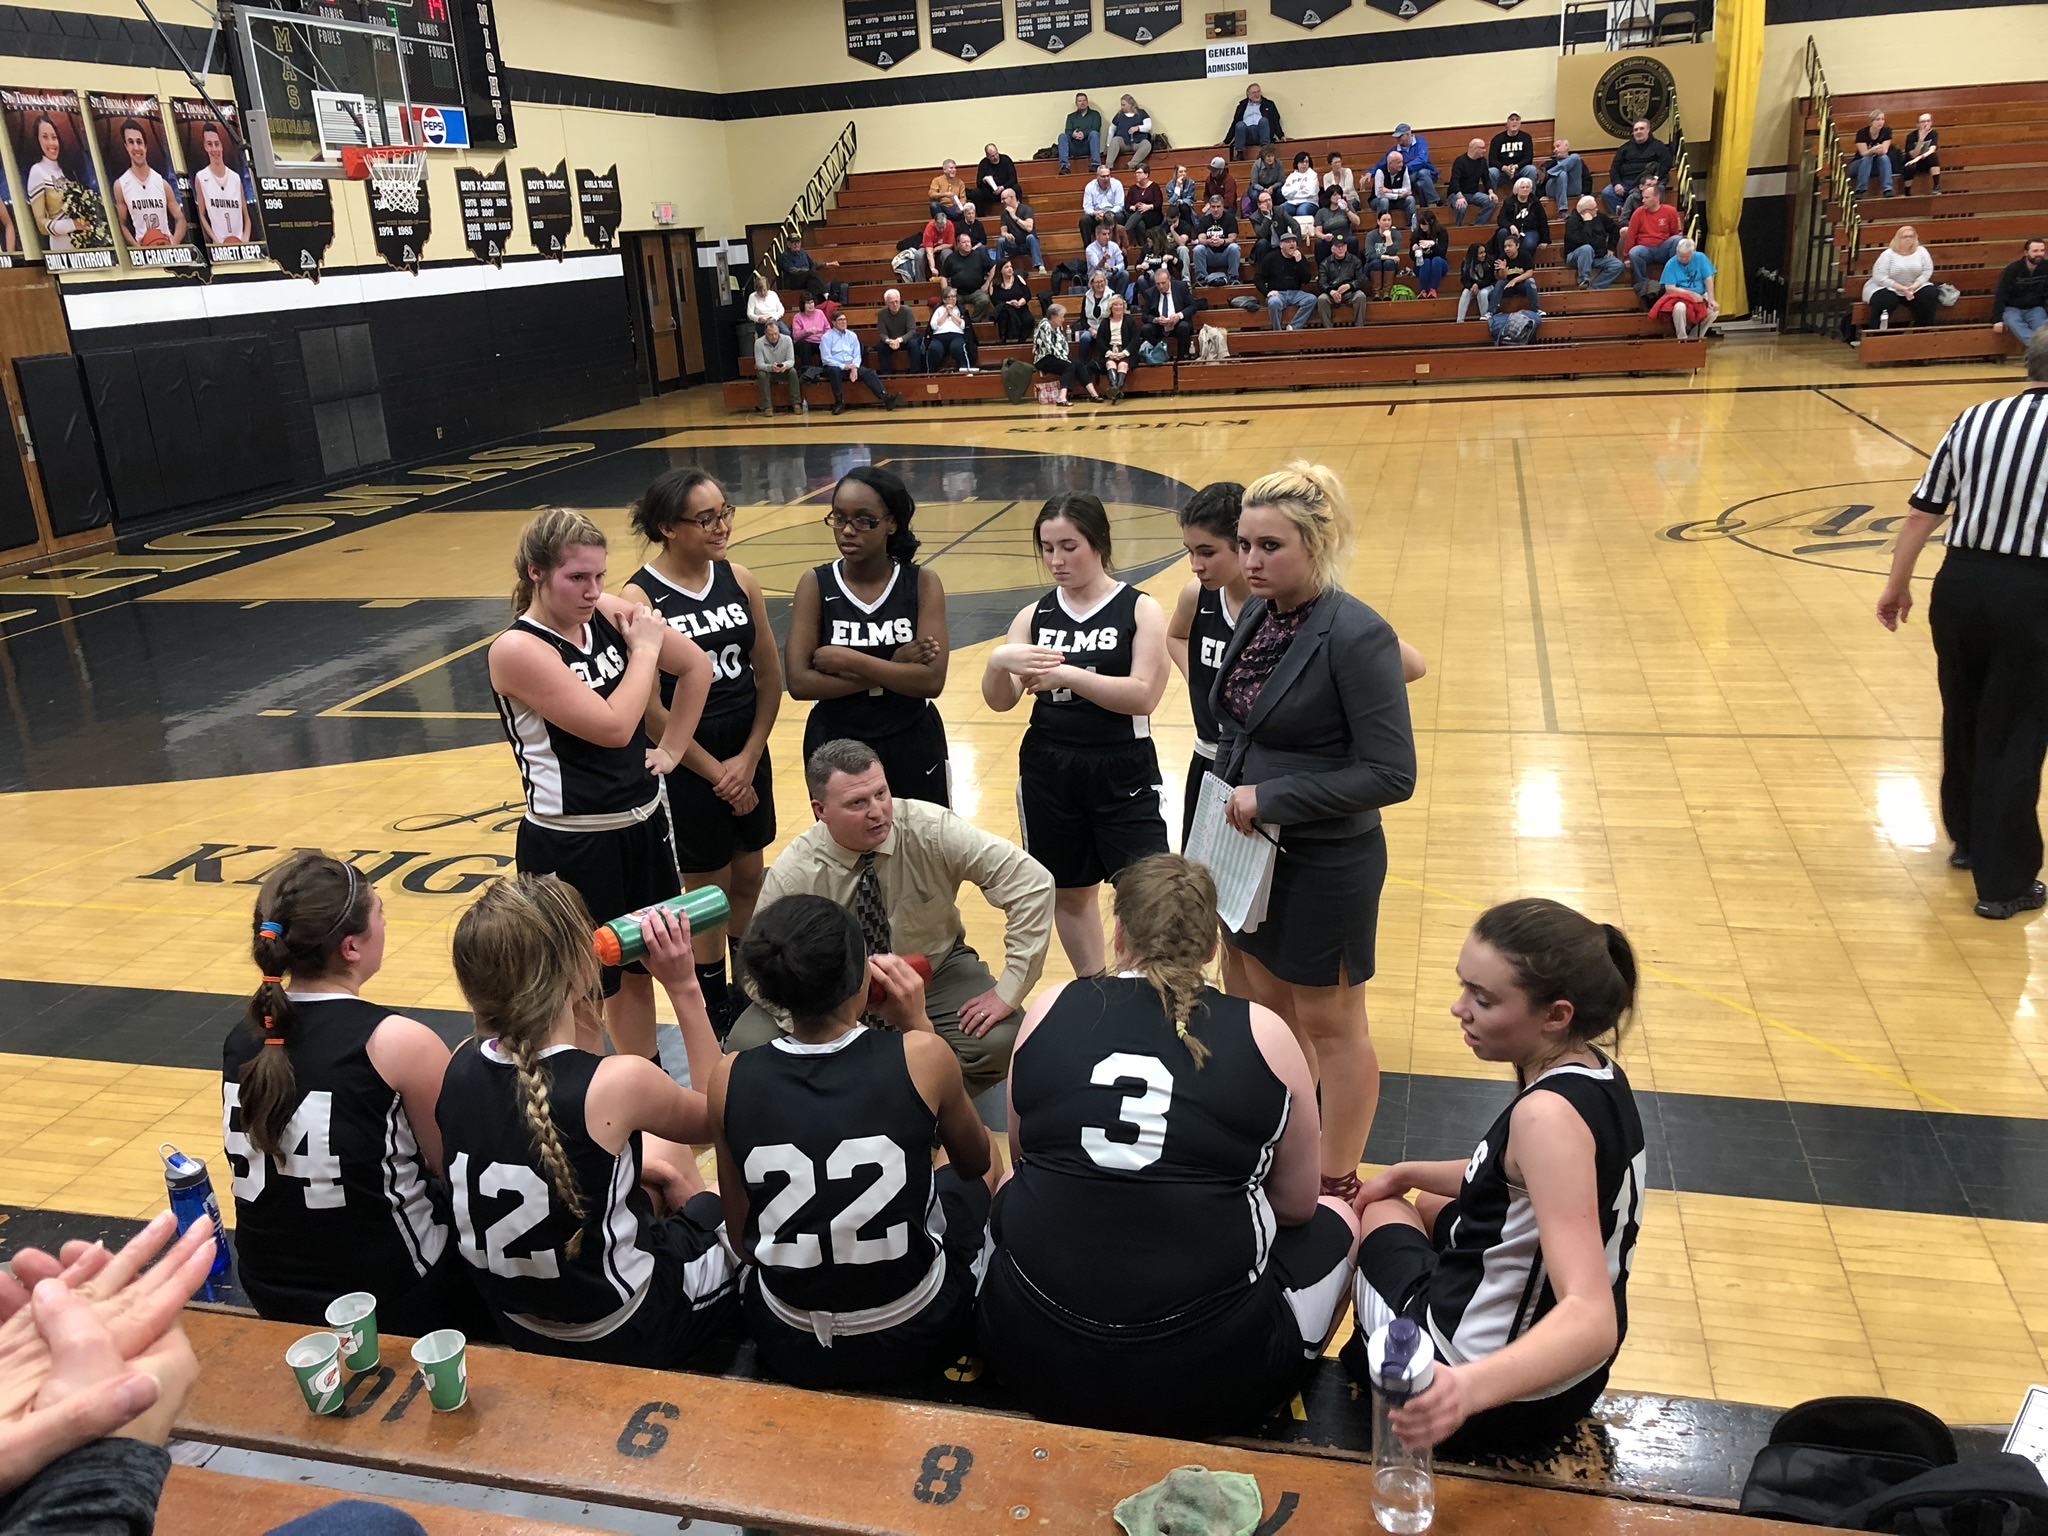 Members of the Elms Varsity Basketball Team discuss strategies with their coaches during a season game.